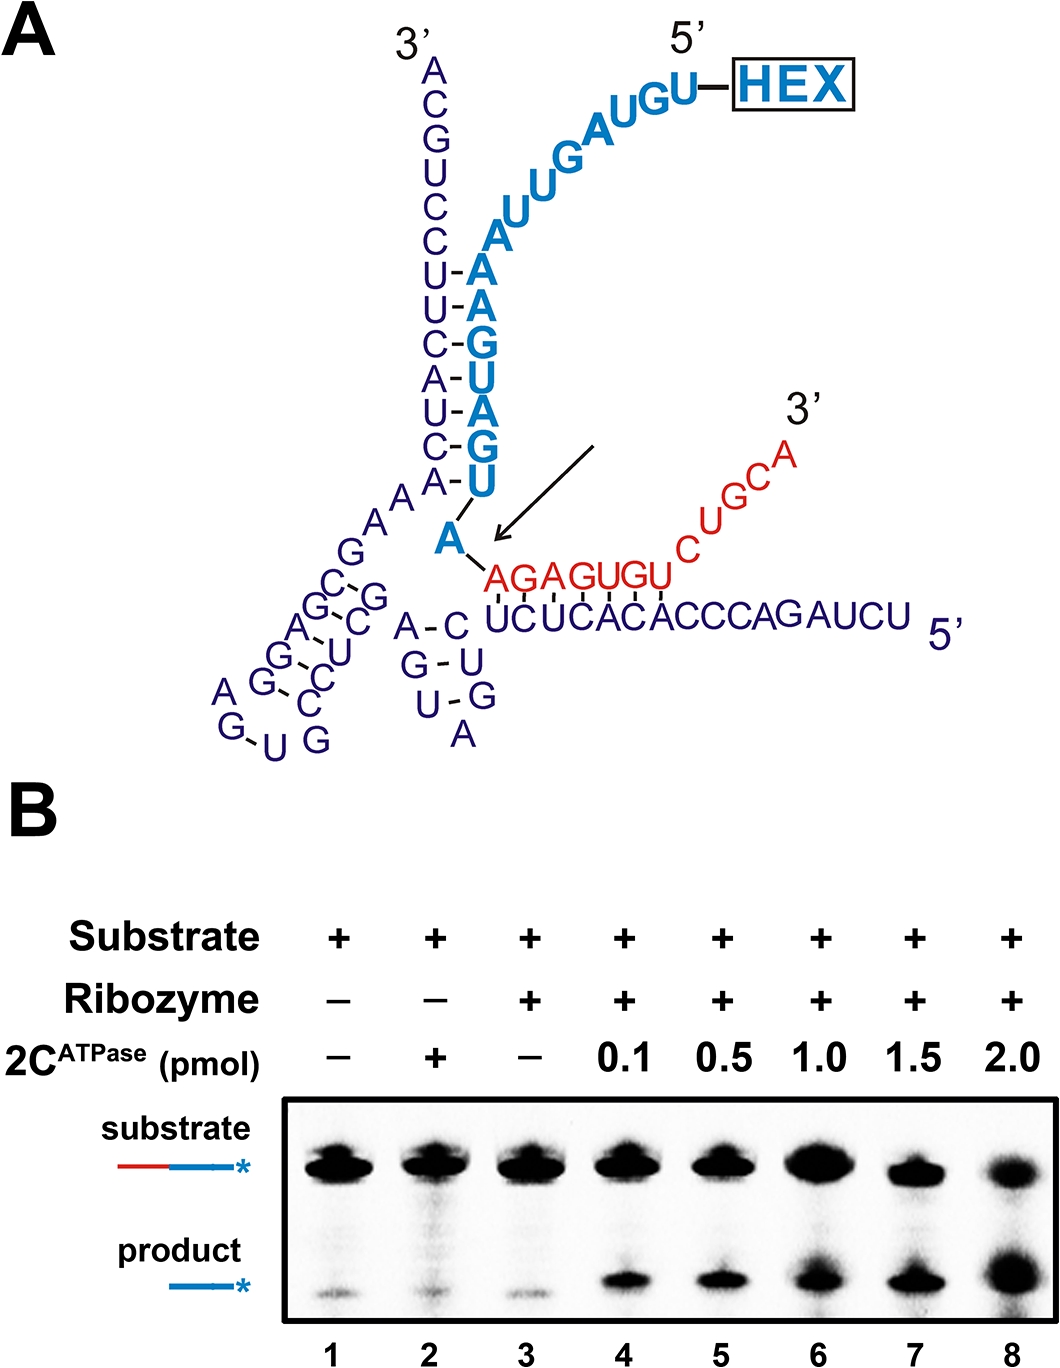 2C<sup>ATPase</sup> enhances hammerhead ribozyme activity.